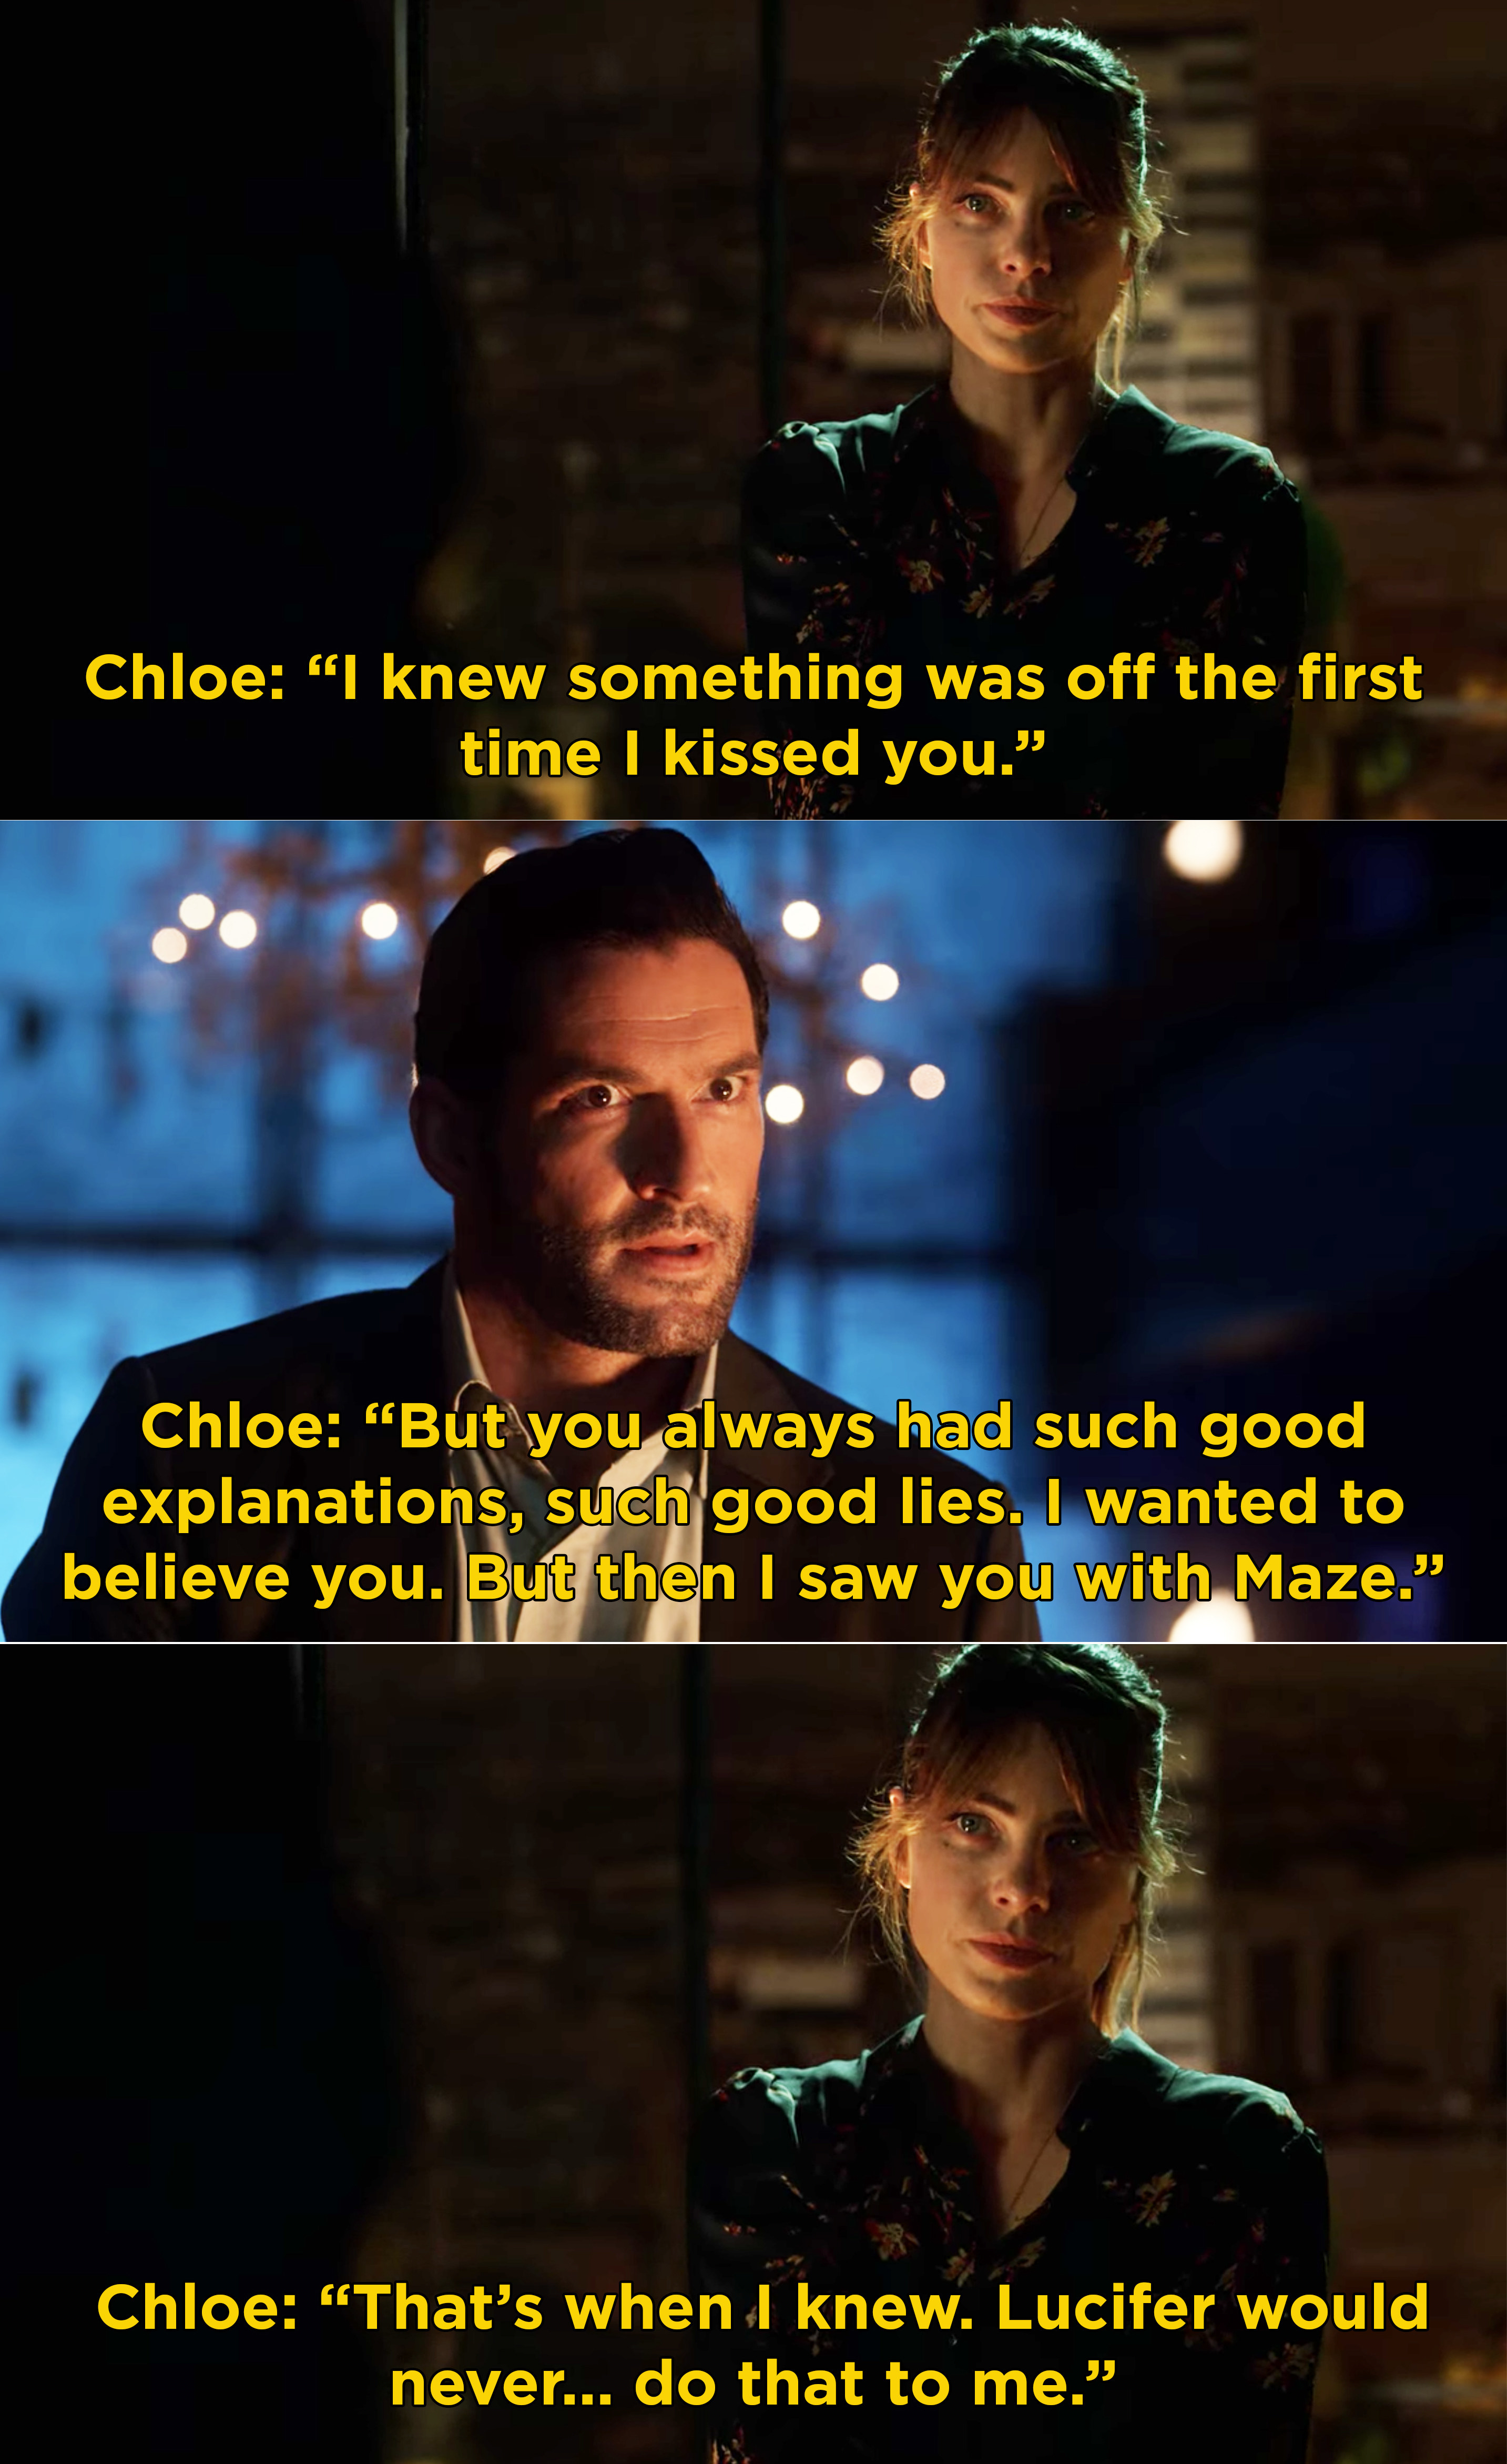 Chloe telling Michael that she knew he wasn't Lucifer when she kissed him and when she saw him with Maze because Lucifer would never do that to her